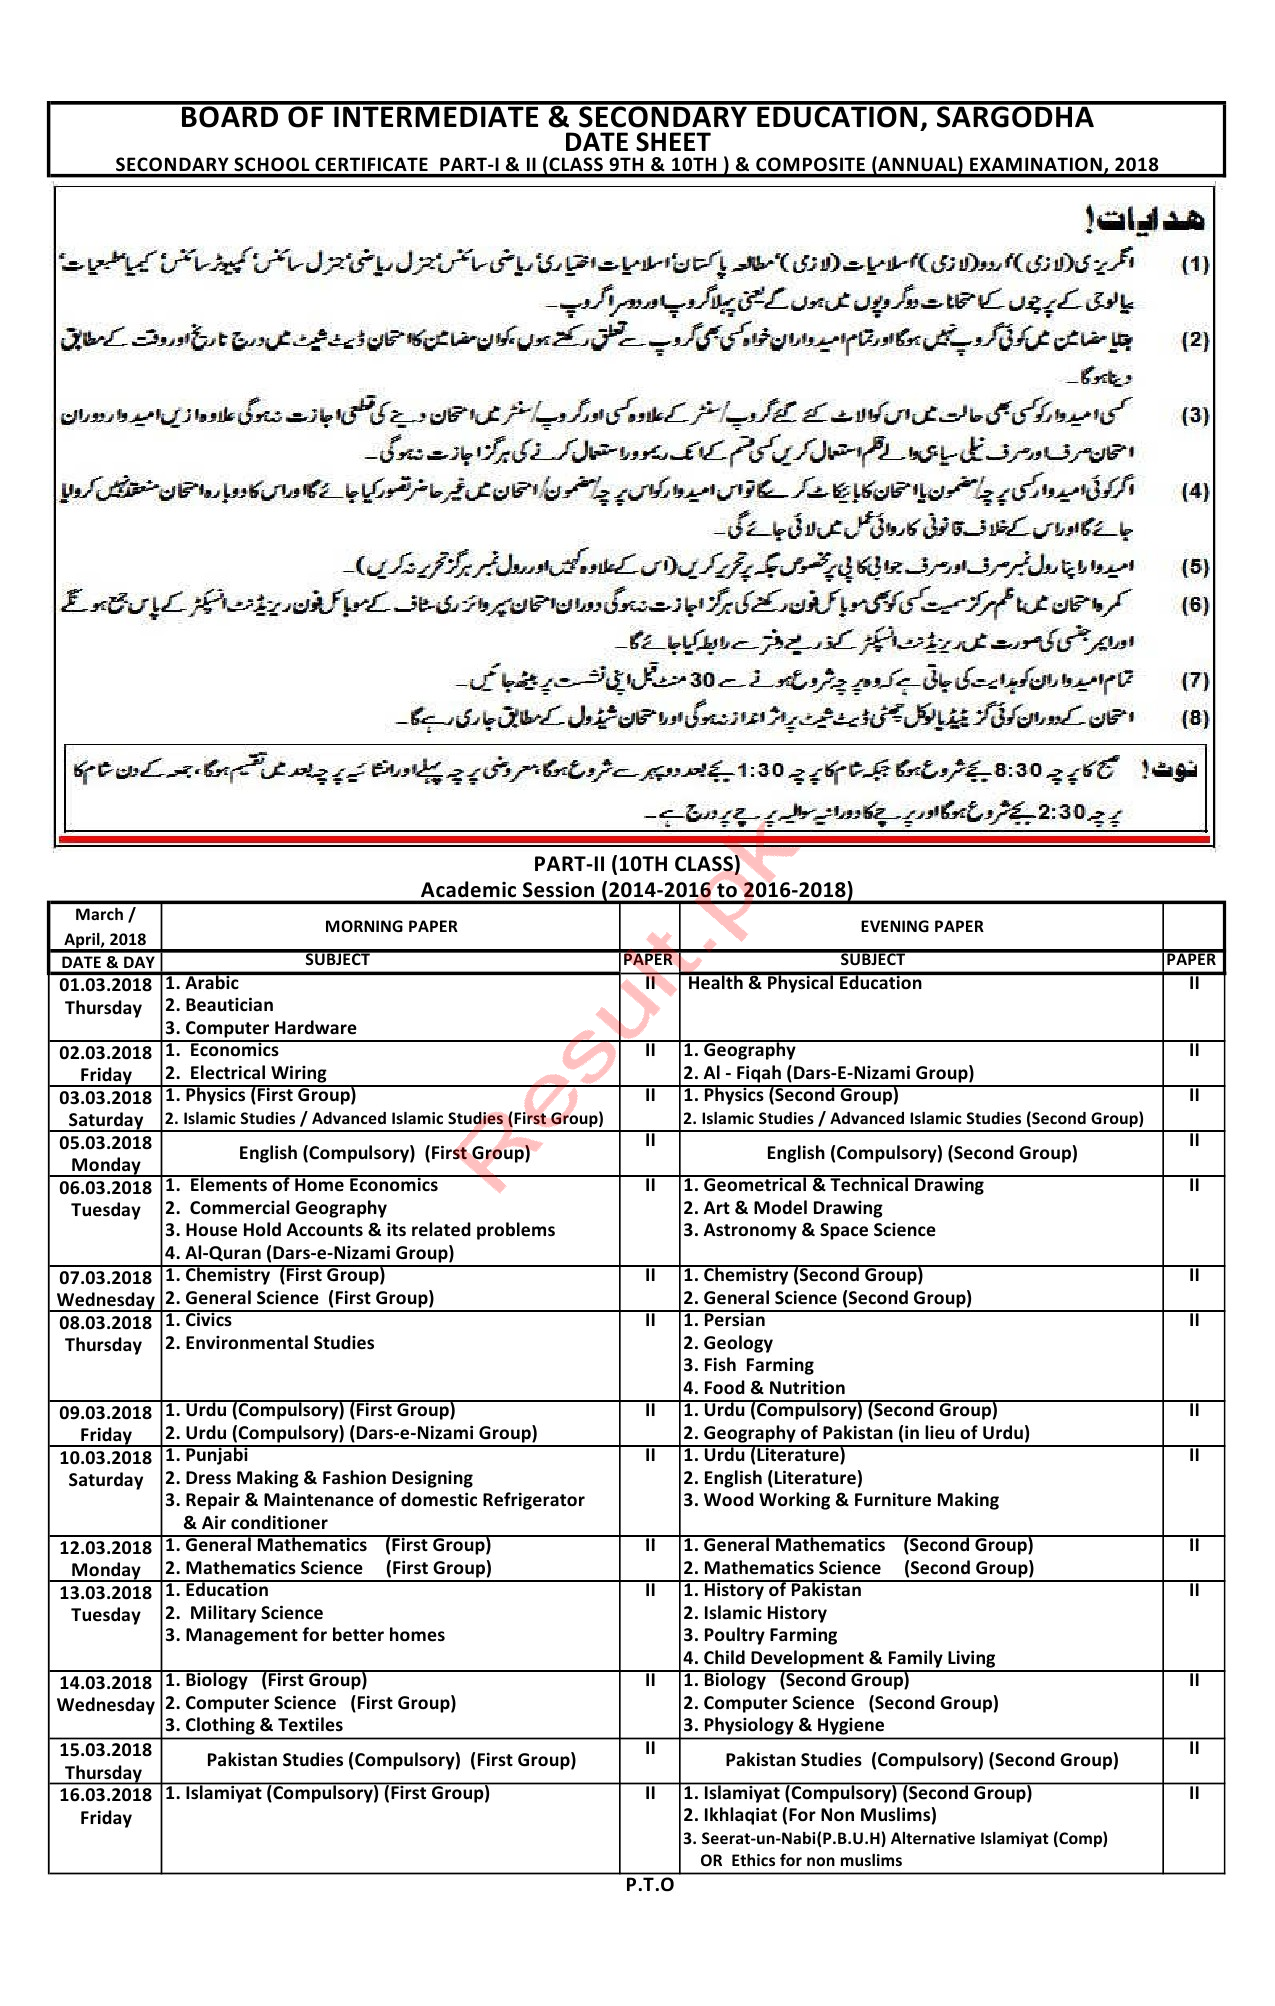 sargodha univeristy admission 2018